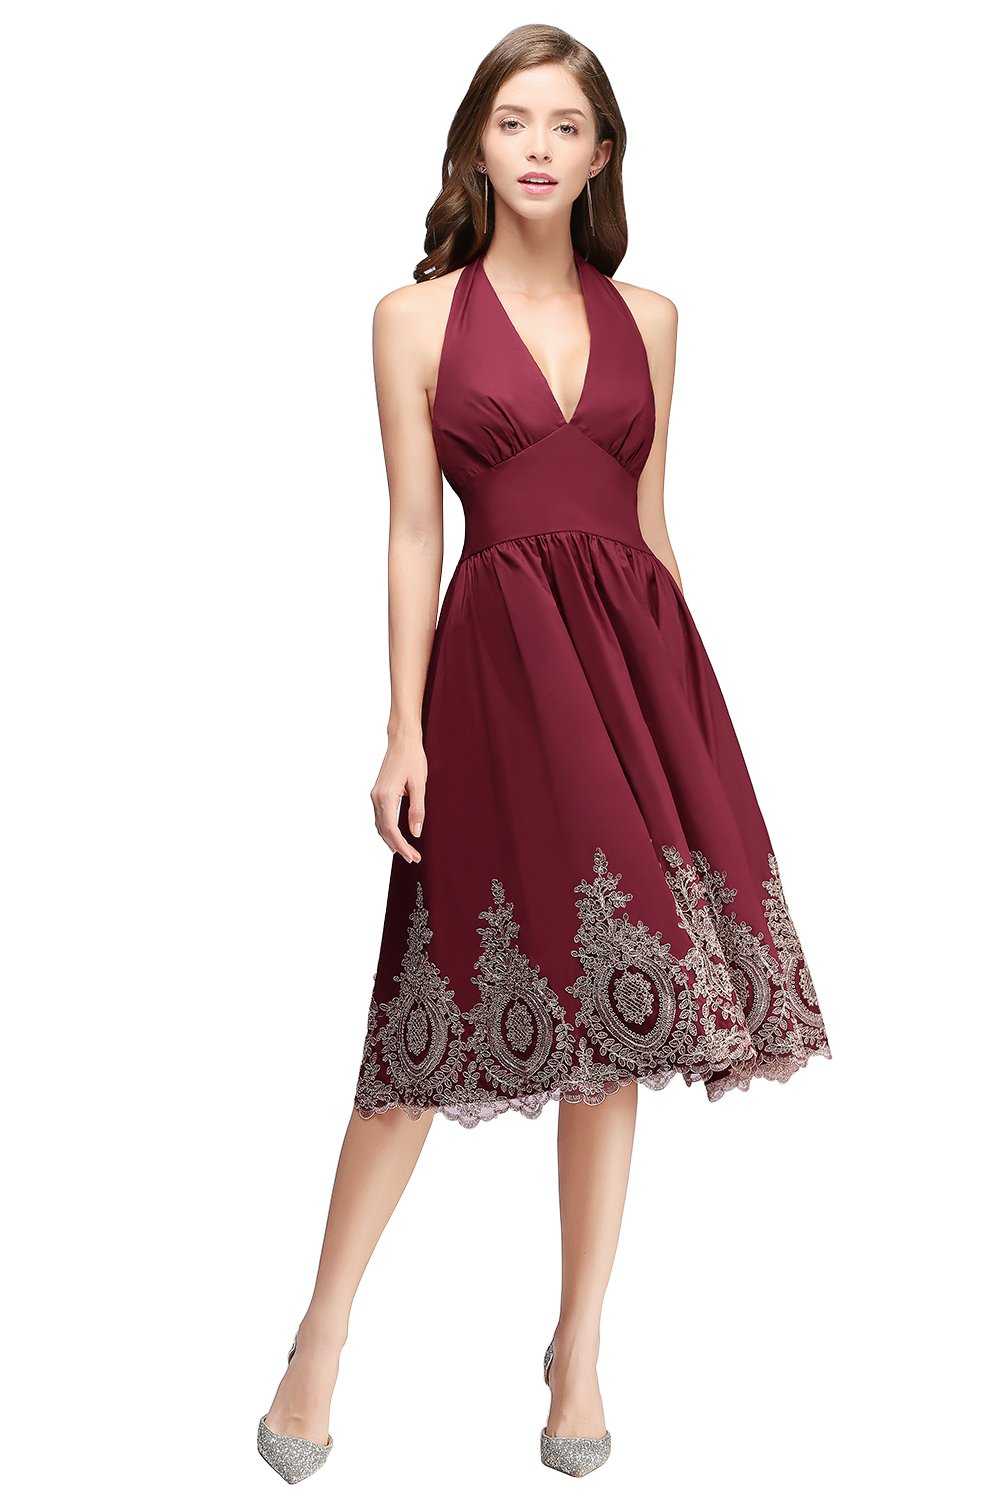 Christmas Dinner Dresses 2019.New Year Eve Christmas Party Dress 2019 Short Prom Dress Cocktail Bridesmaid Gowns With Gold Appliques Burgundy